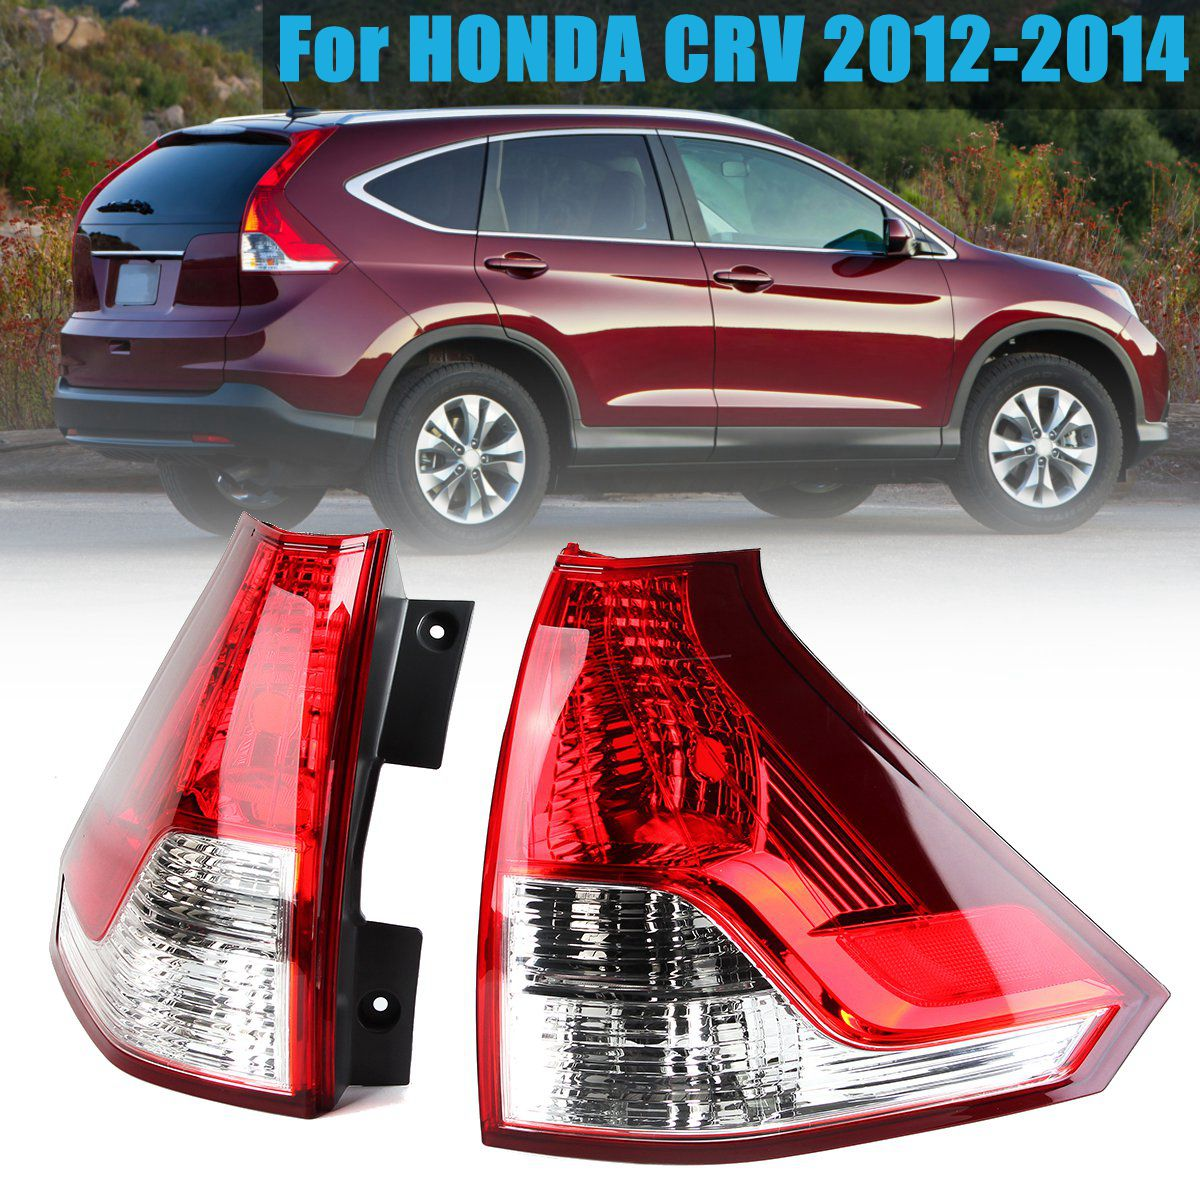 Tail Light Clear Red Left/Right Tail Rear Bumper Light LED Brake Light Tail Lamp for Honda CRV 2012 2013 2014 цены